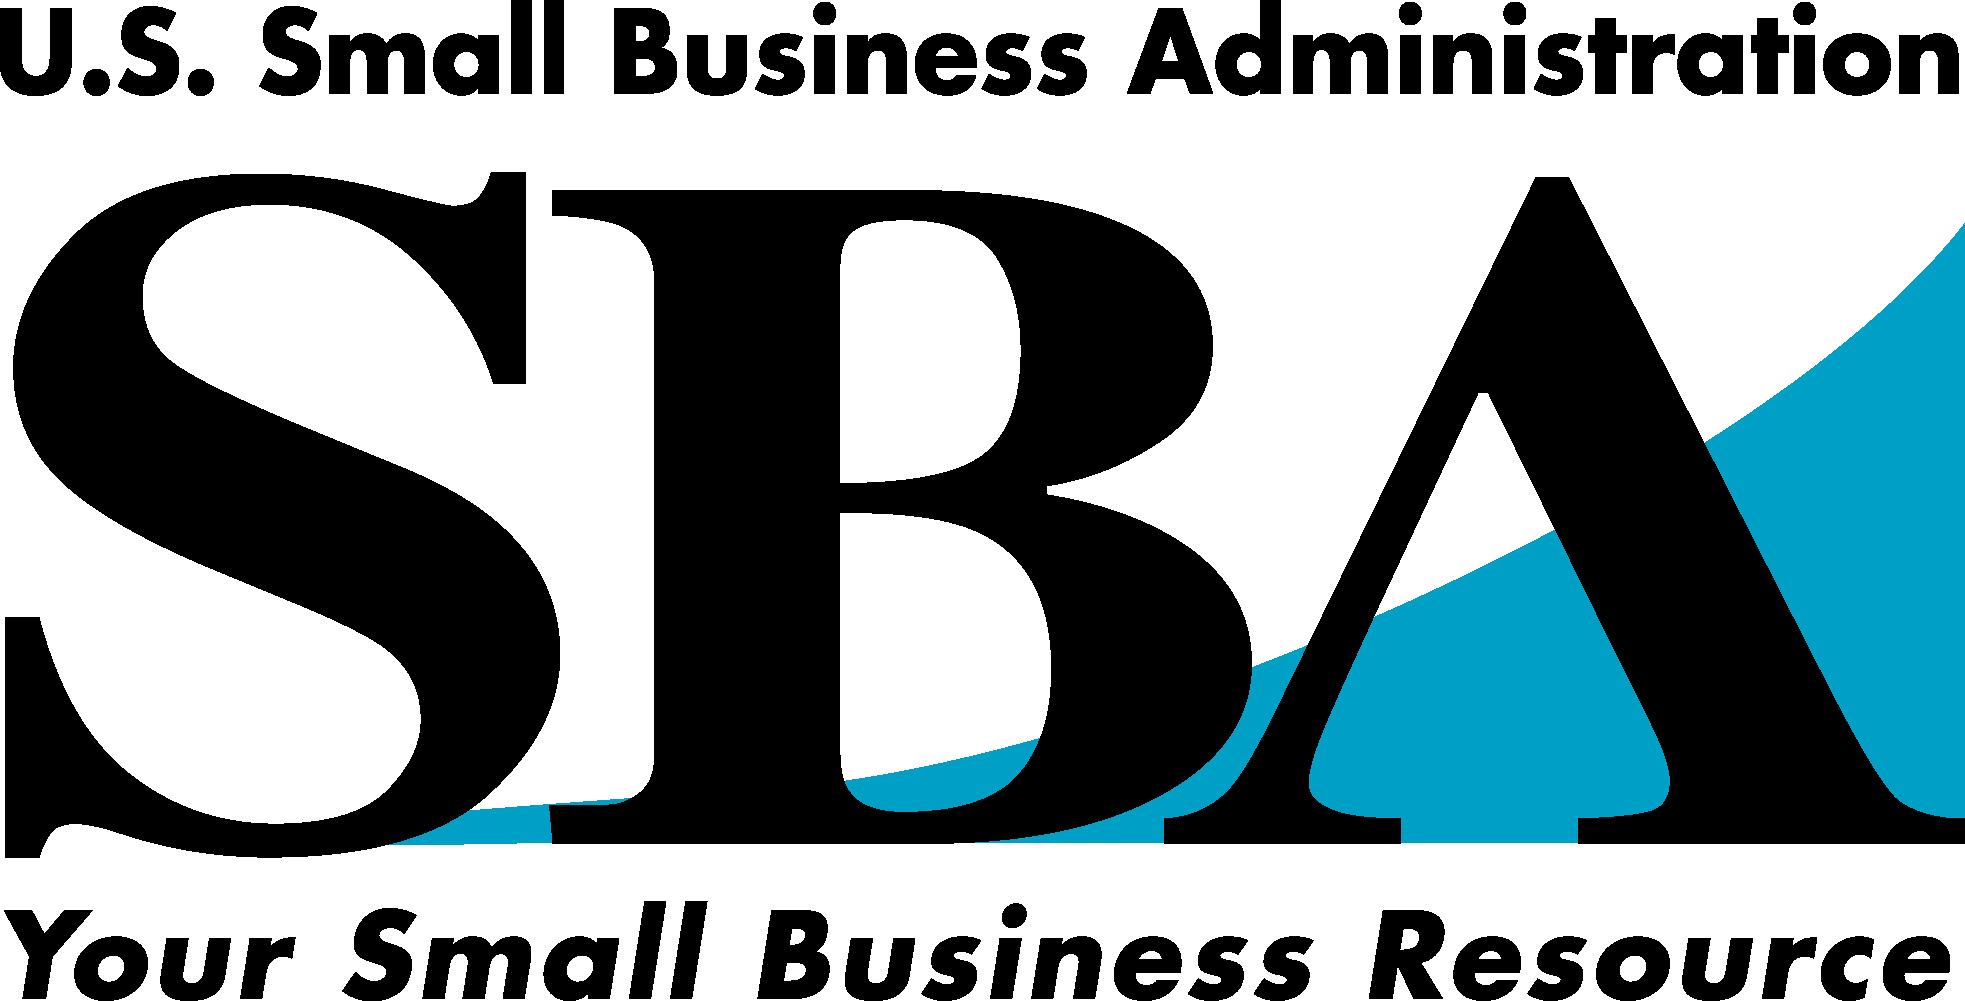 picture of U.S. Small Business Association logo